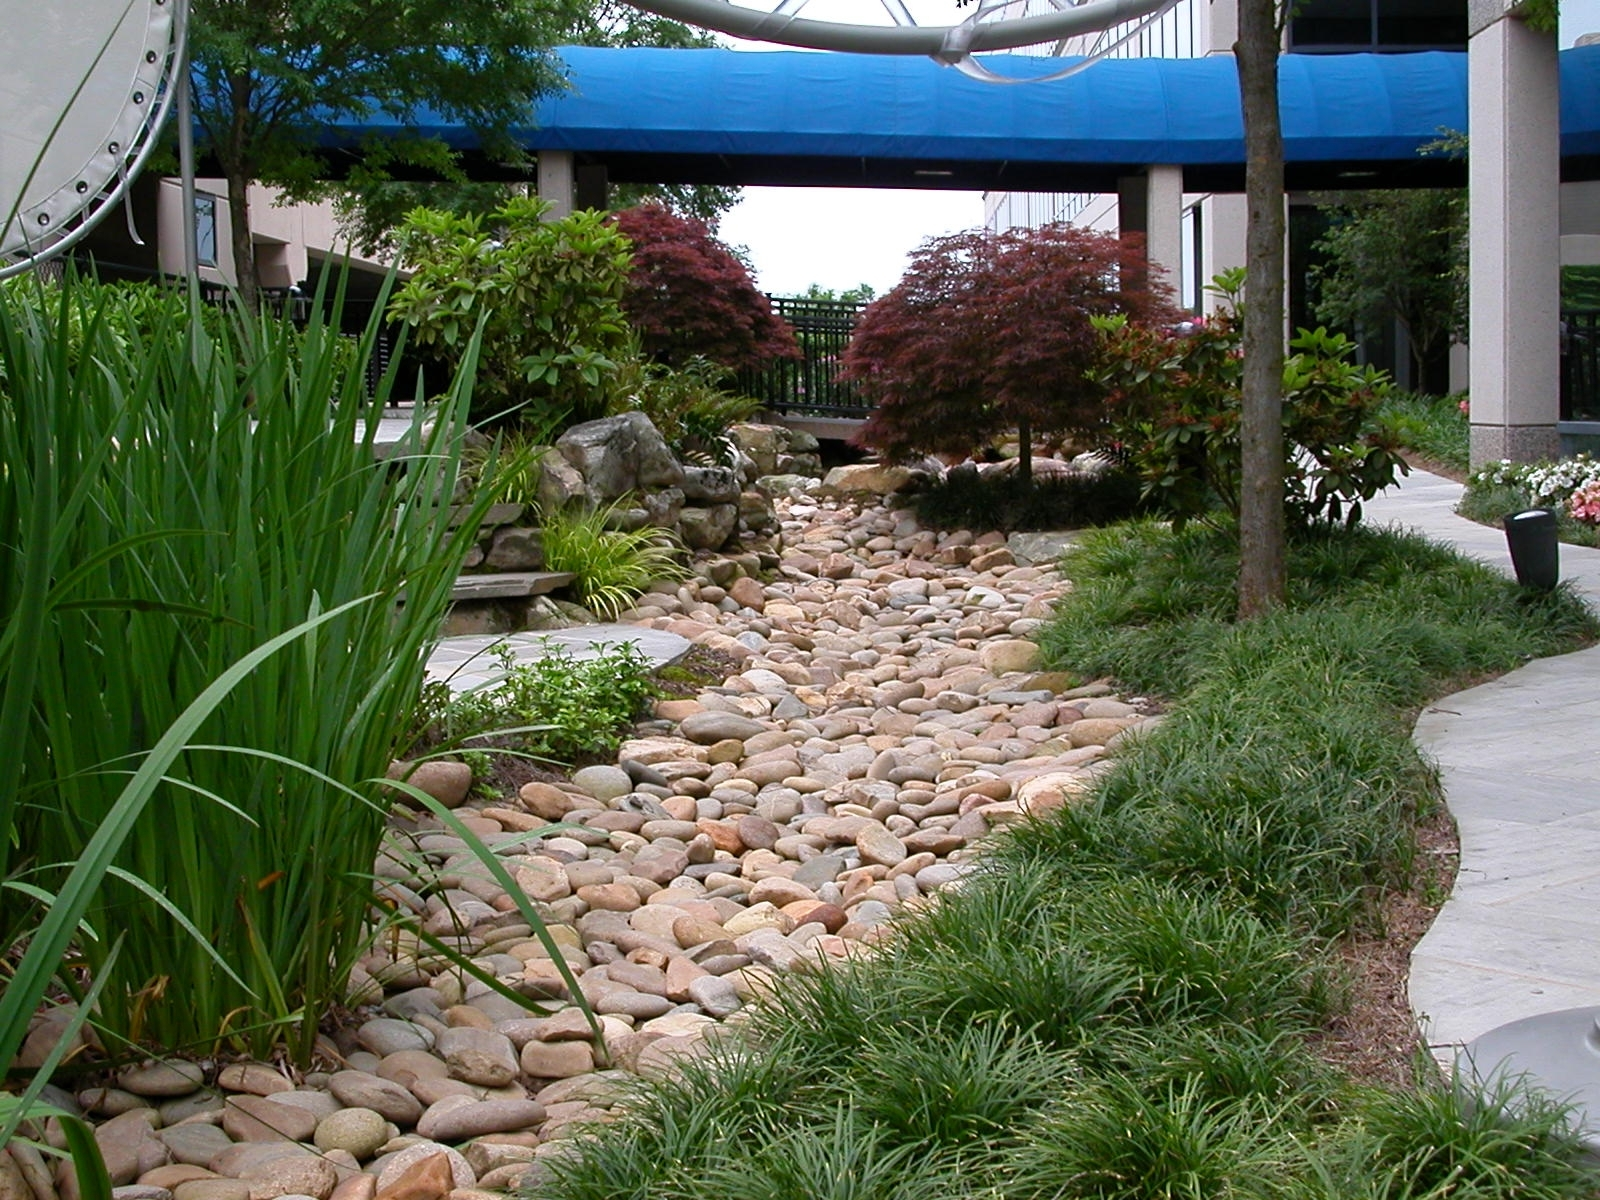 Best 25 Drainage Ditch Ideas On Pinterest Dry Creek Dry With Regard To Dry Riverbed Landscape Create Dry Riverbed Landscape Ideas